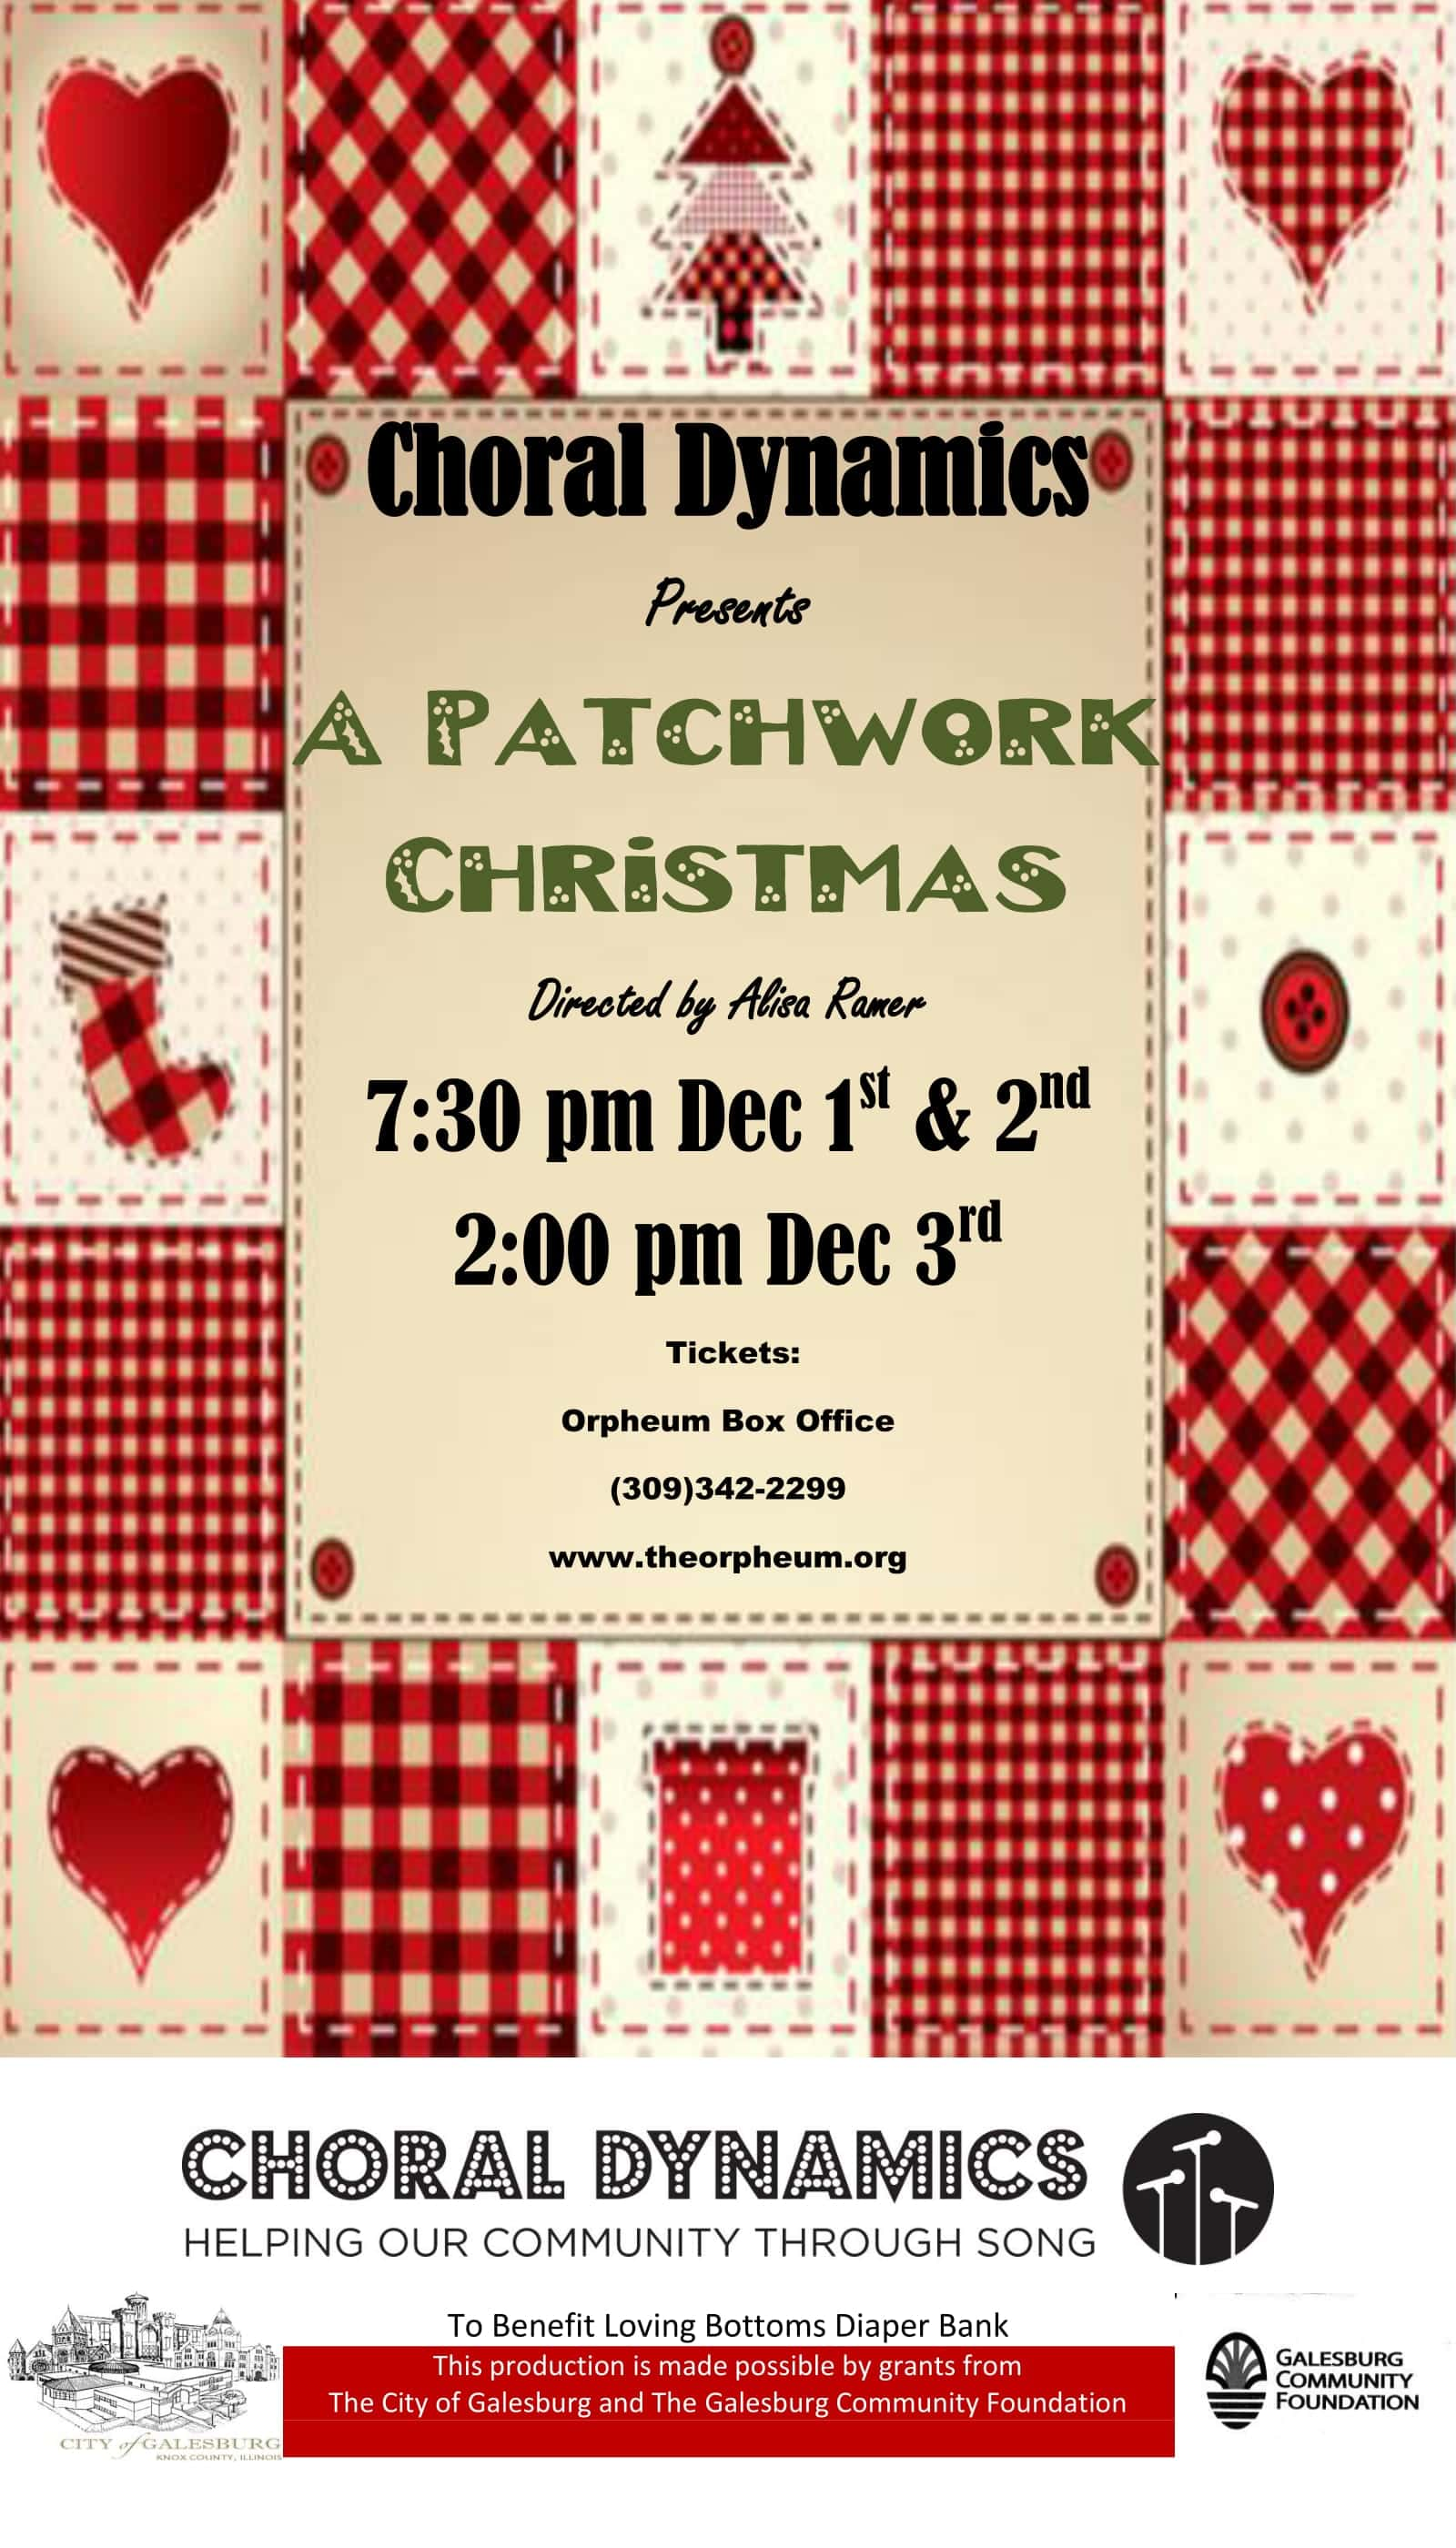 2020 Christmas Food Box 61401 A Patchwork Christmas | WGIL 93.7 FM & 1400 AM